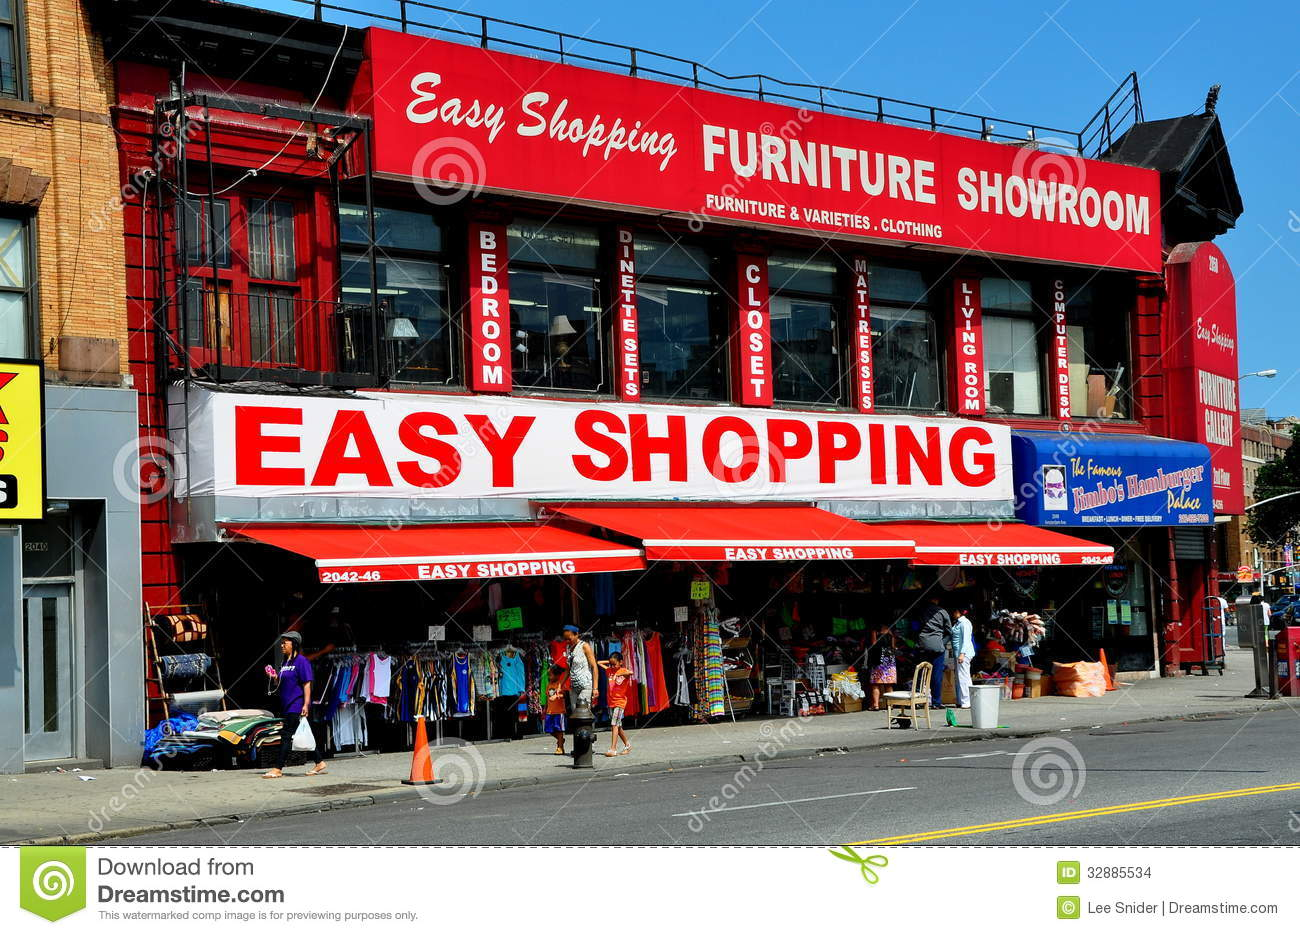 Nyc furniture store in upper harlem editorial stock image for Furniture stores nyc